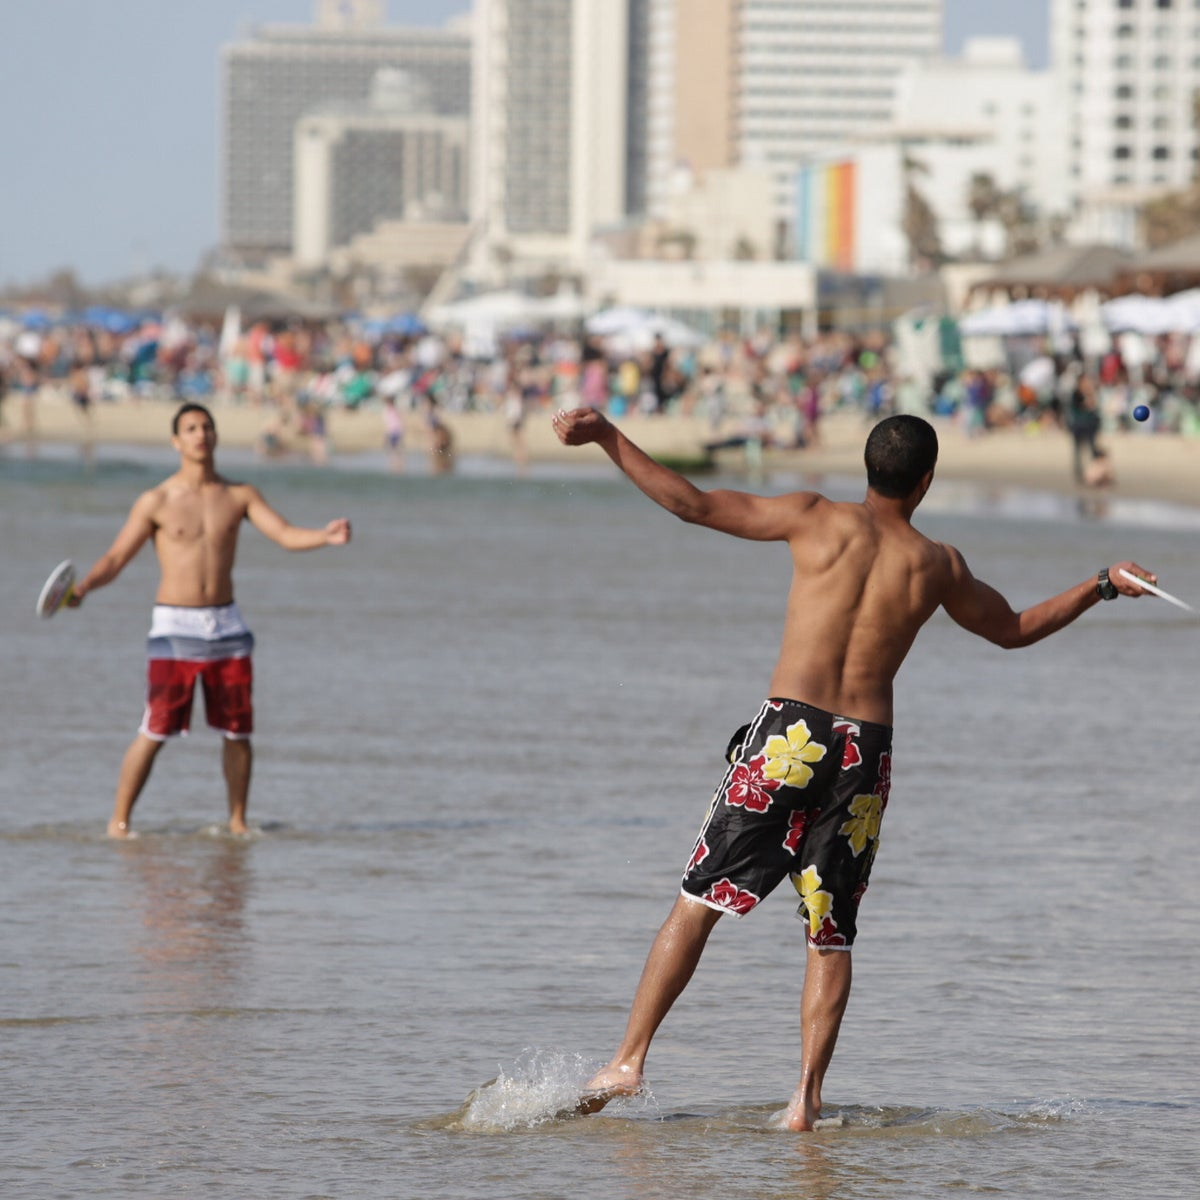 Israelis playing matkot on the beach in Tel Aviv., March 17, 2015.